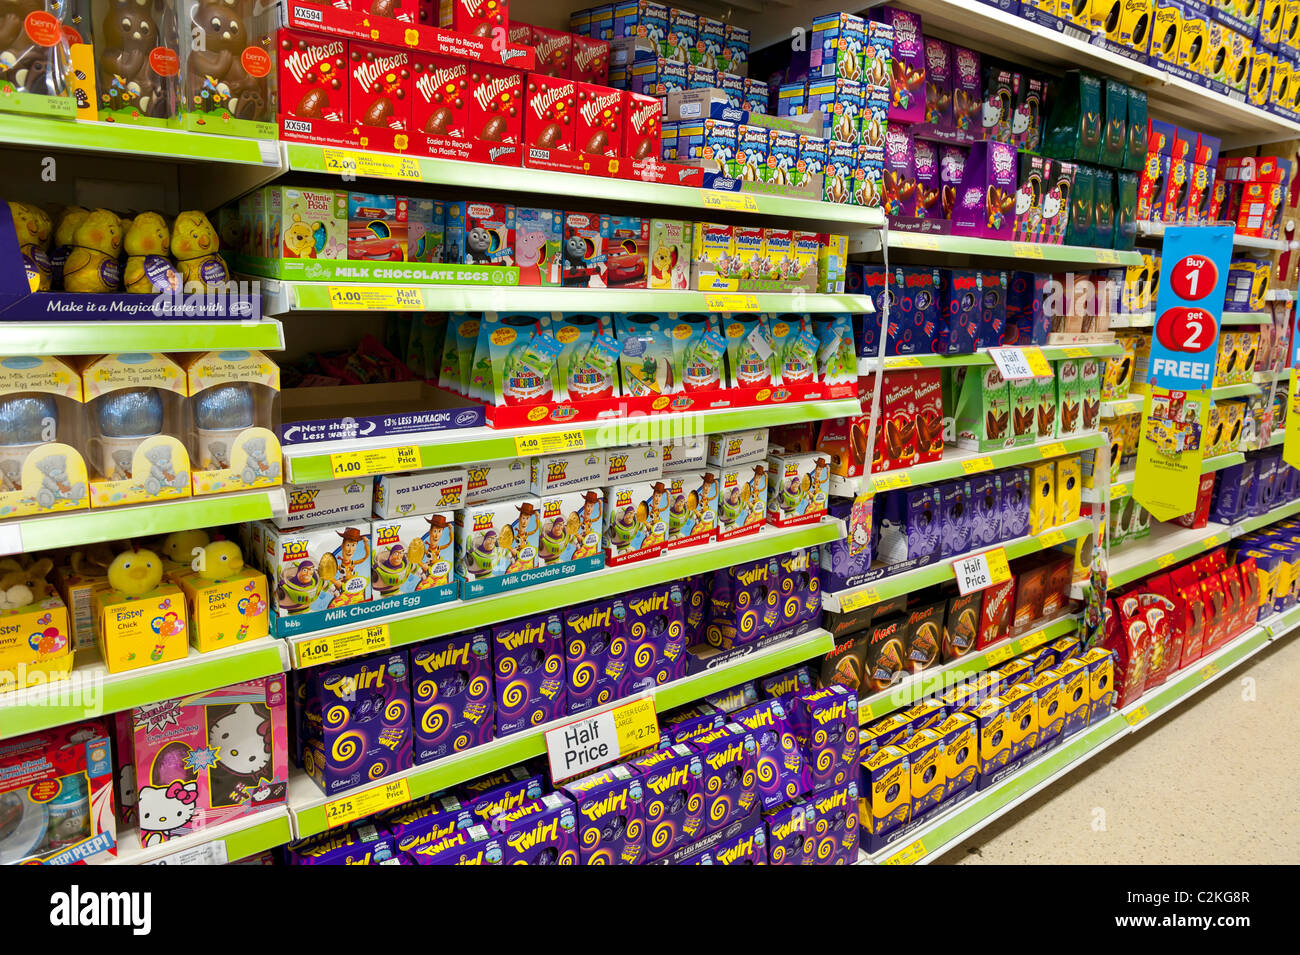 Inside tesco store stock photos inside tesco store stock images a selection of chocolate easter eggs in a tesco supermarket in the uk stock image negle Gallery